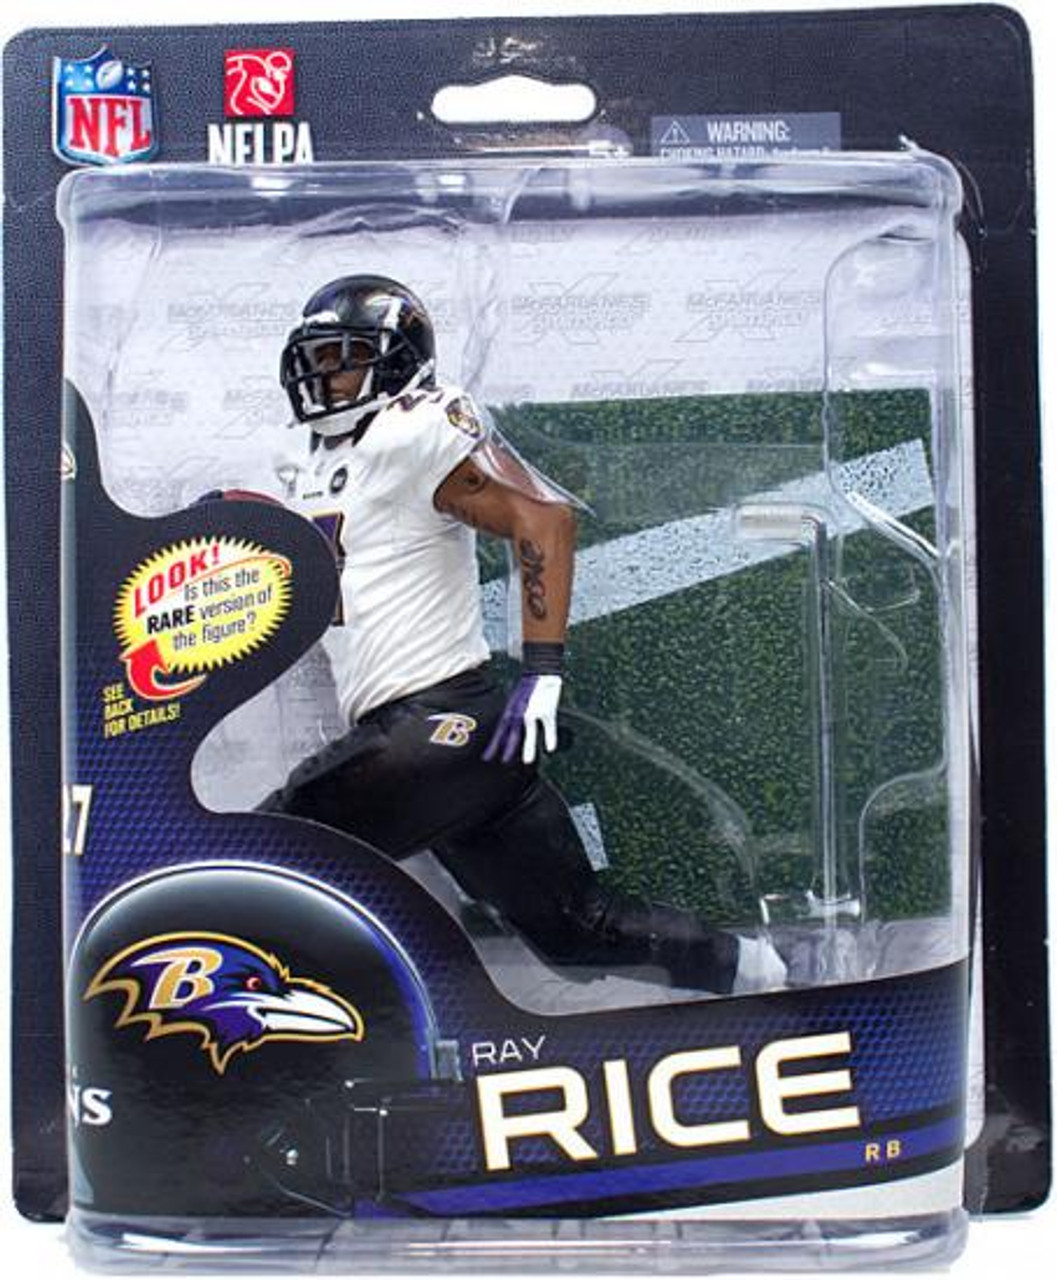 McFarlane Toys NFL Baltimore Ravens Sports Picks Series 32 Ray Rice Action Figure [White Jersey]